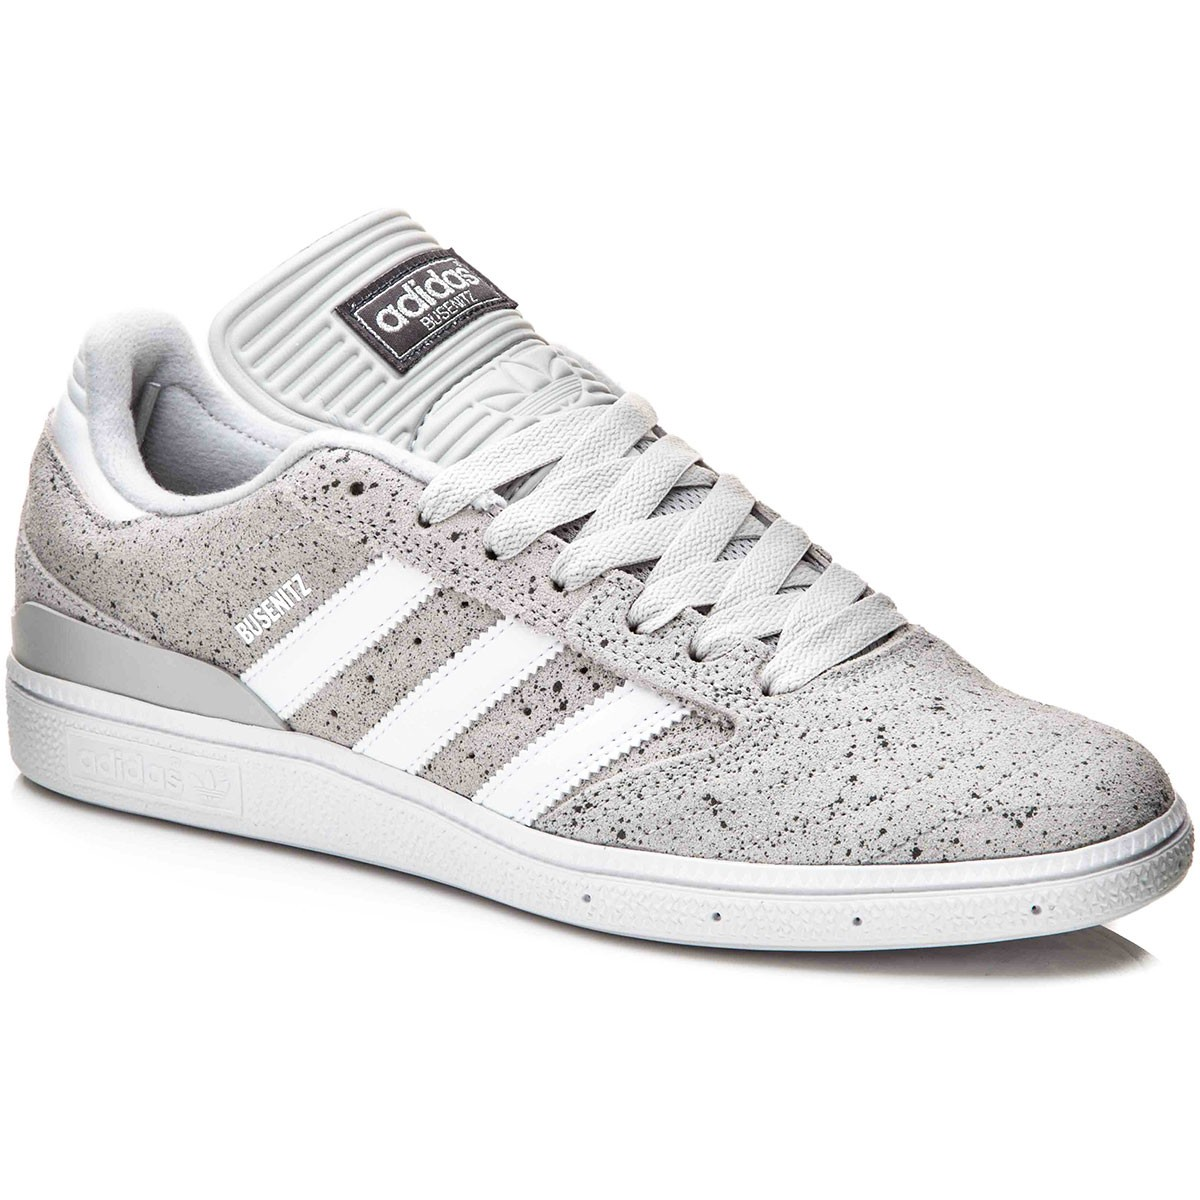 ff613f9c936 Adidas Busenitz Shoes